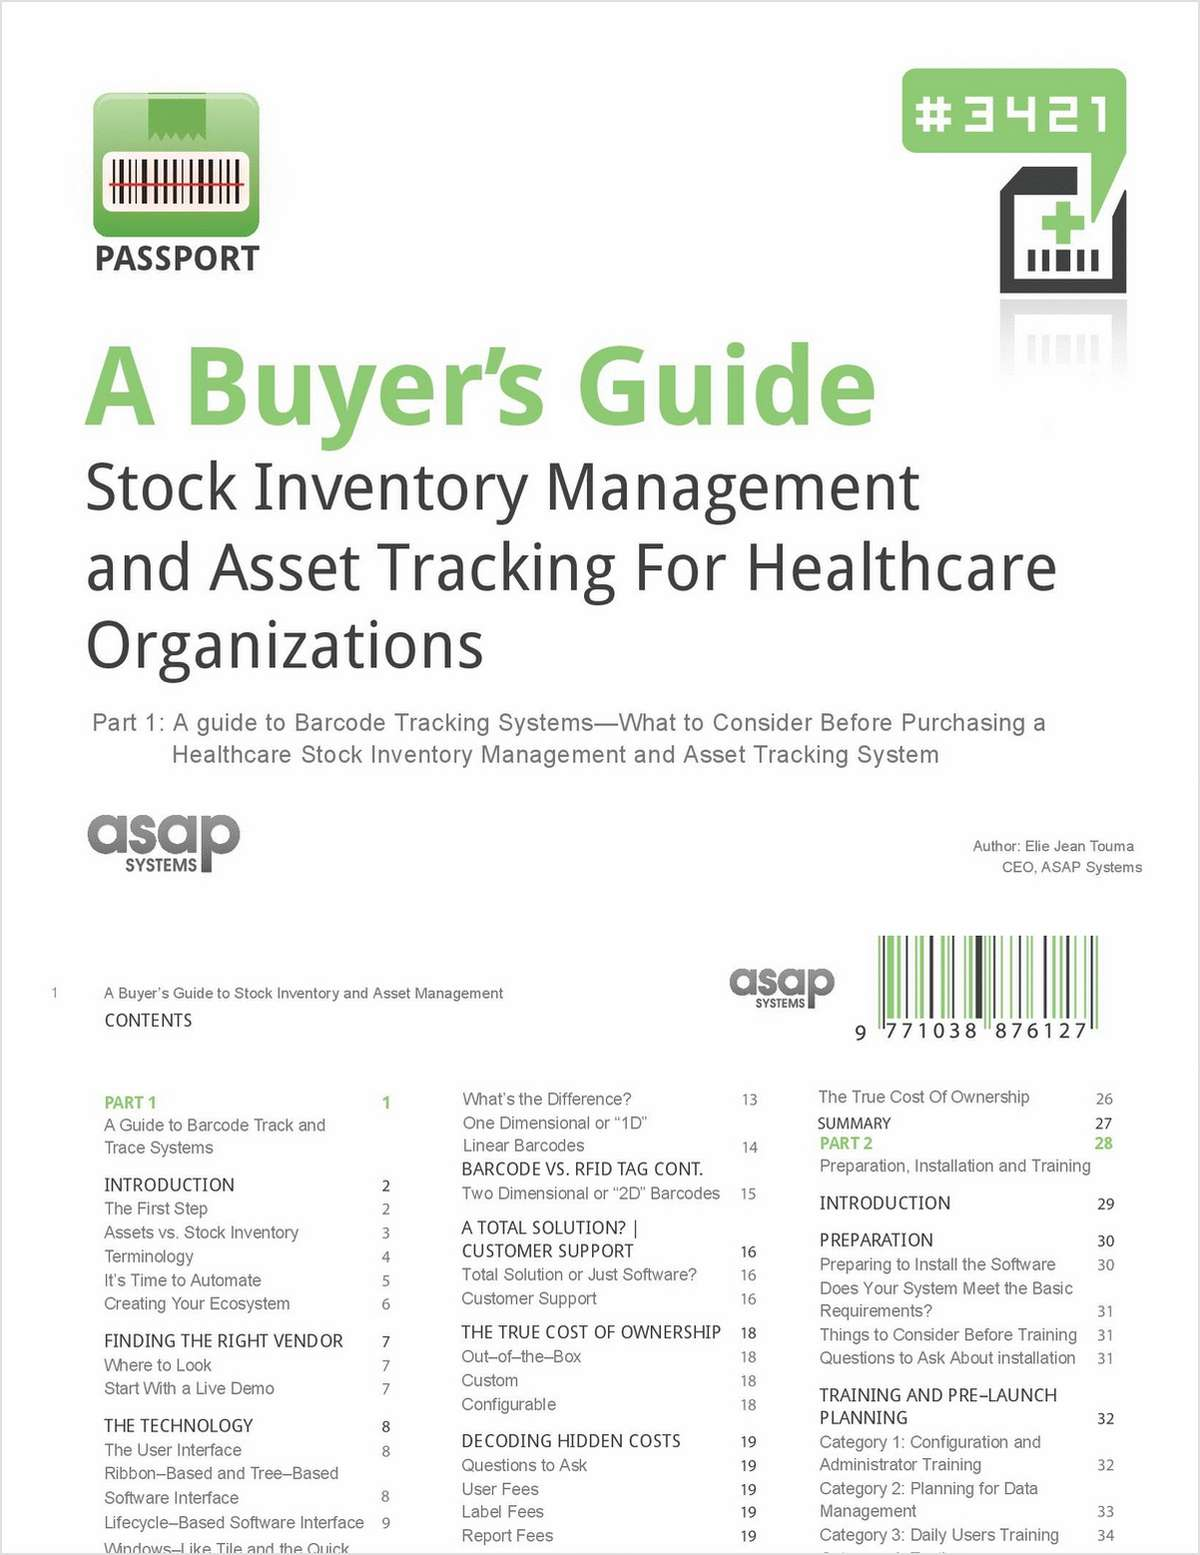 A Buyer's Guide: Stock Inventory Management and Asset Tracking for Healthcare Organizations